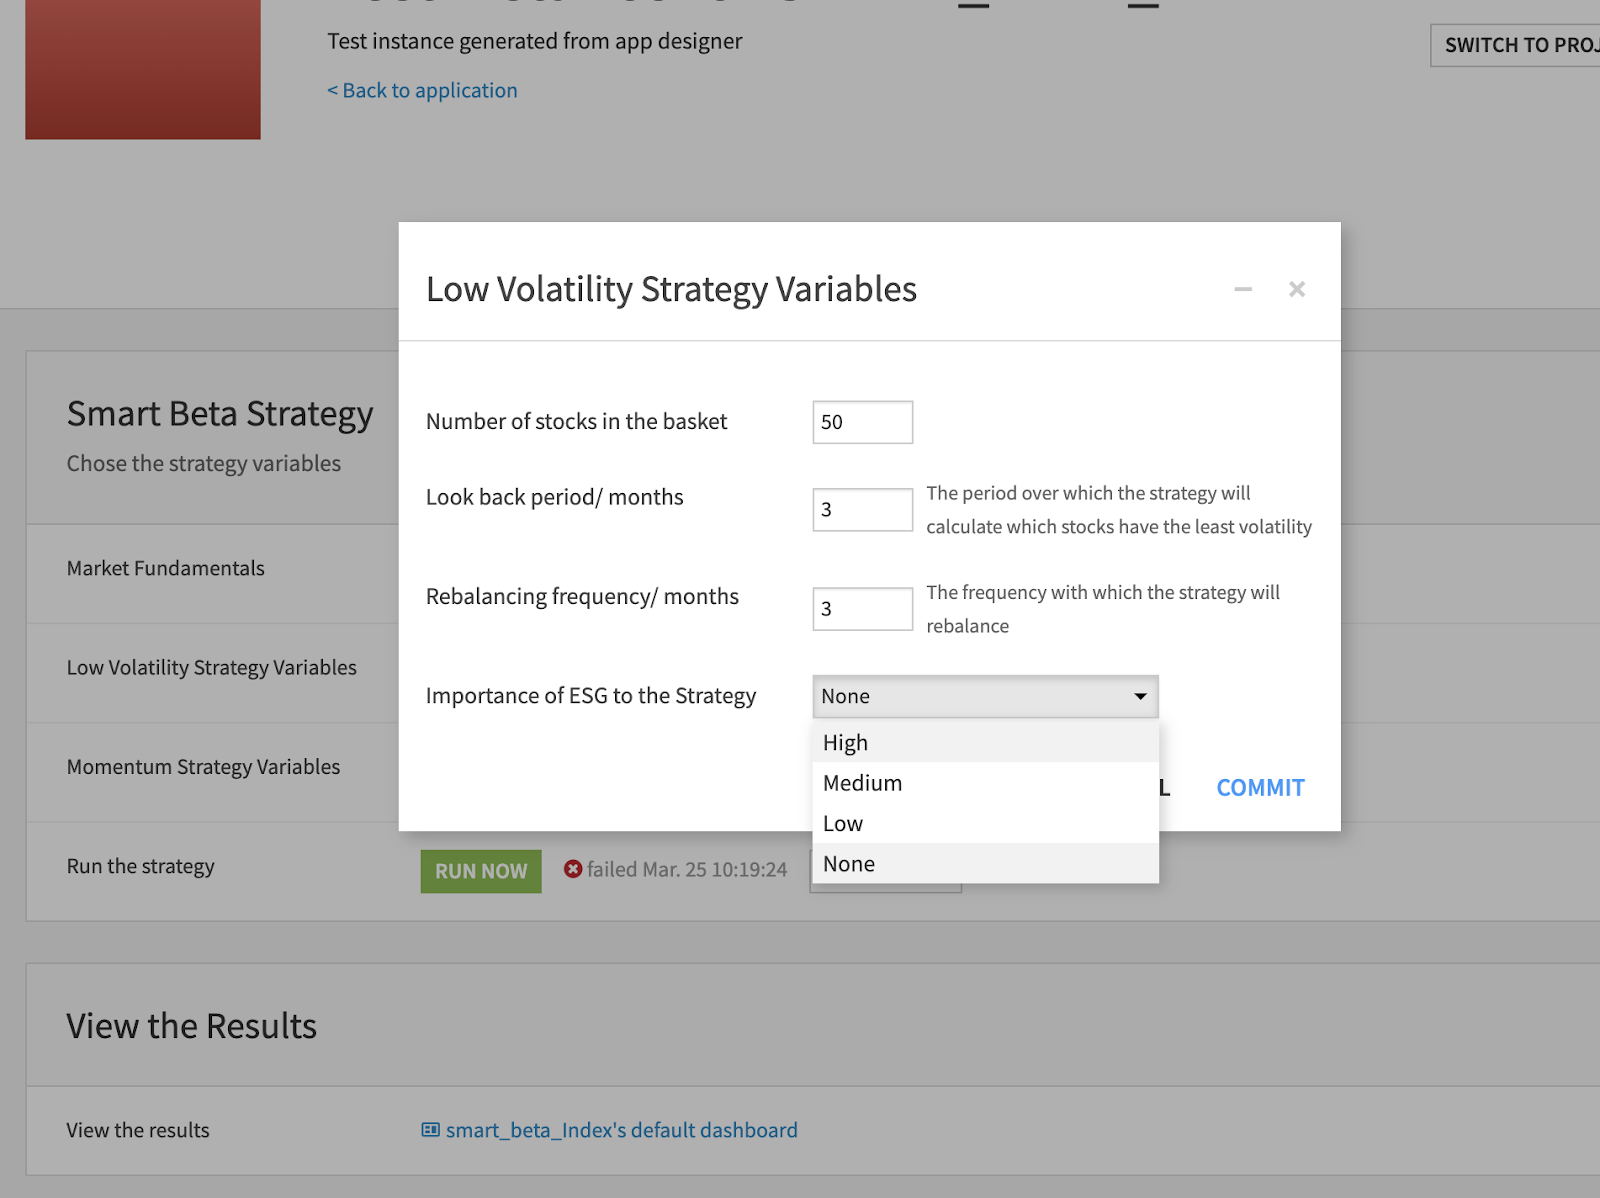 low volatility strategy variables